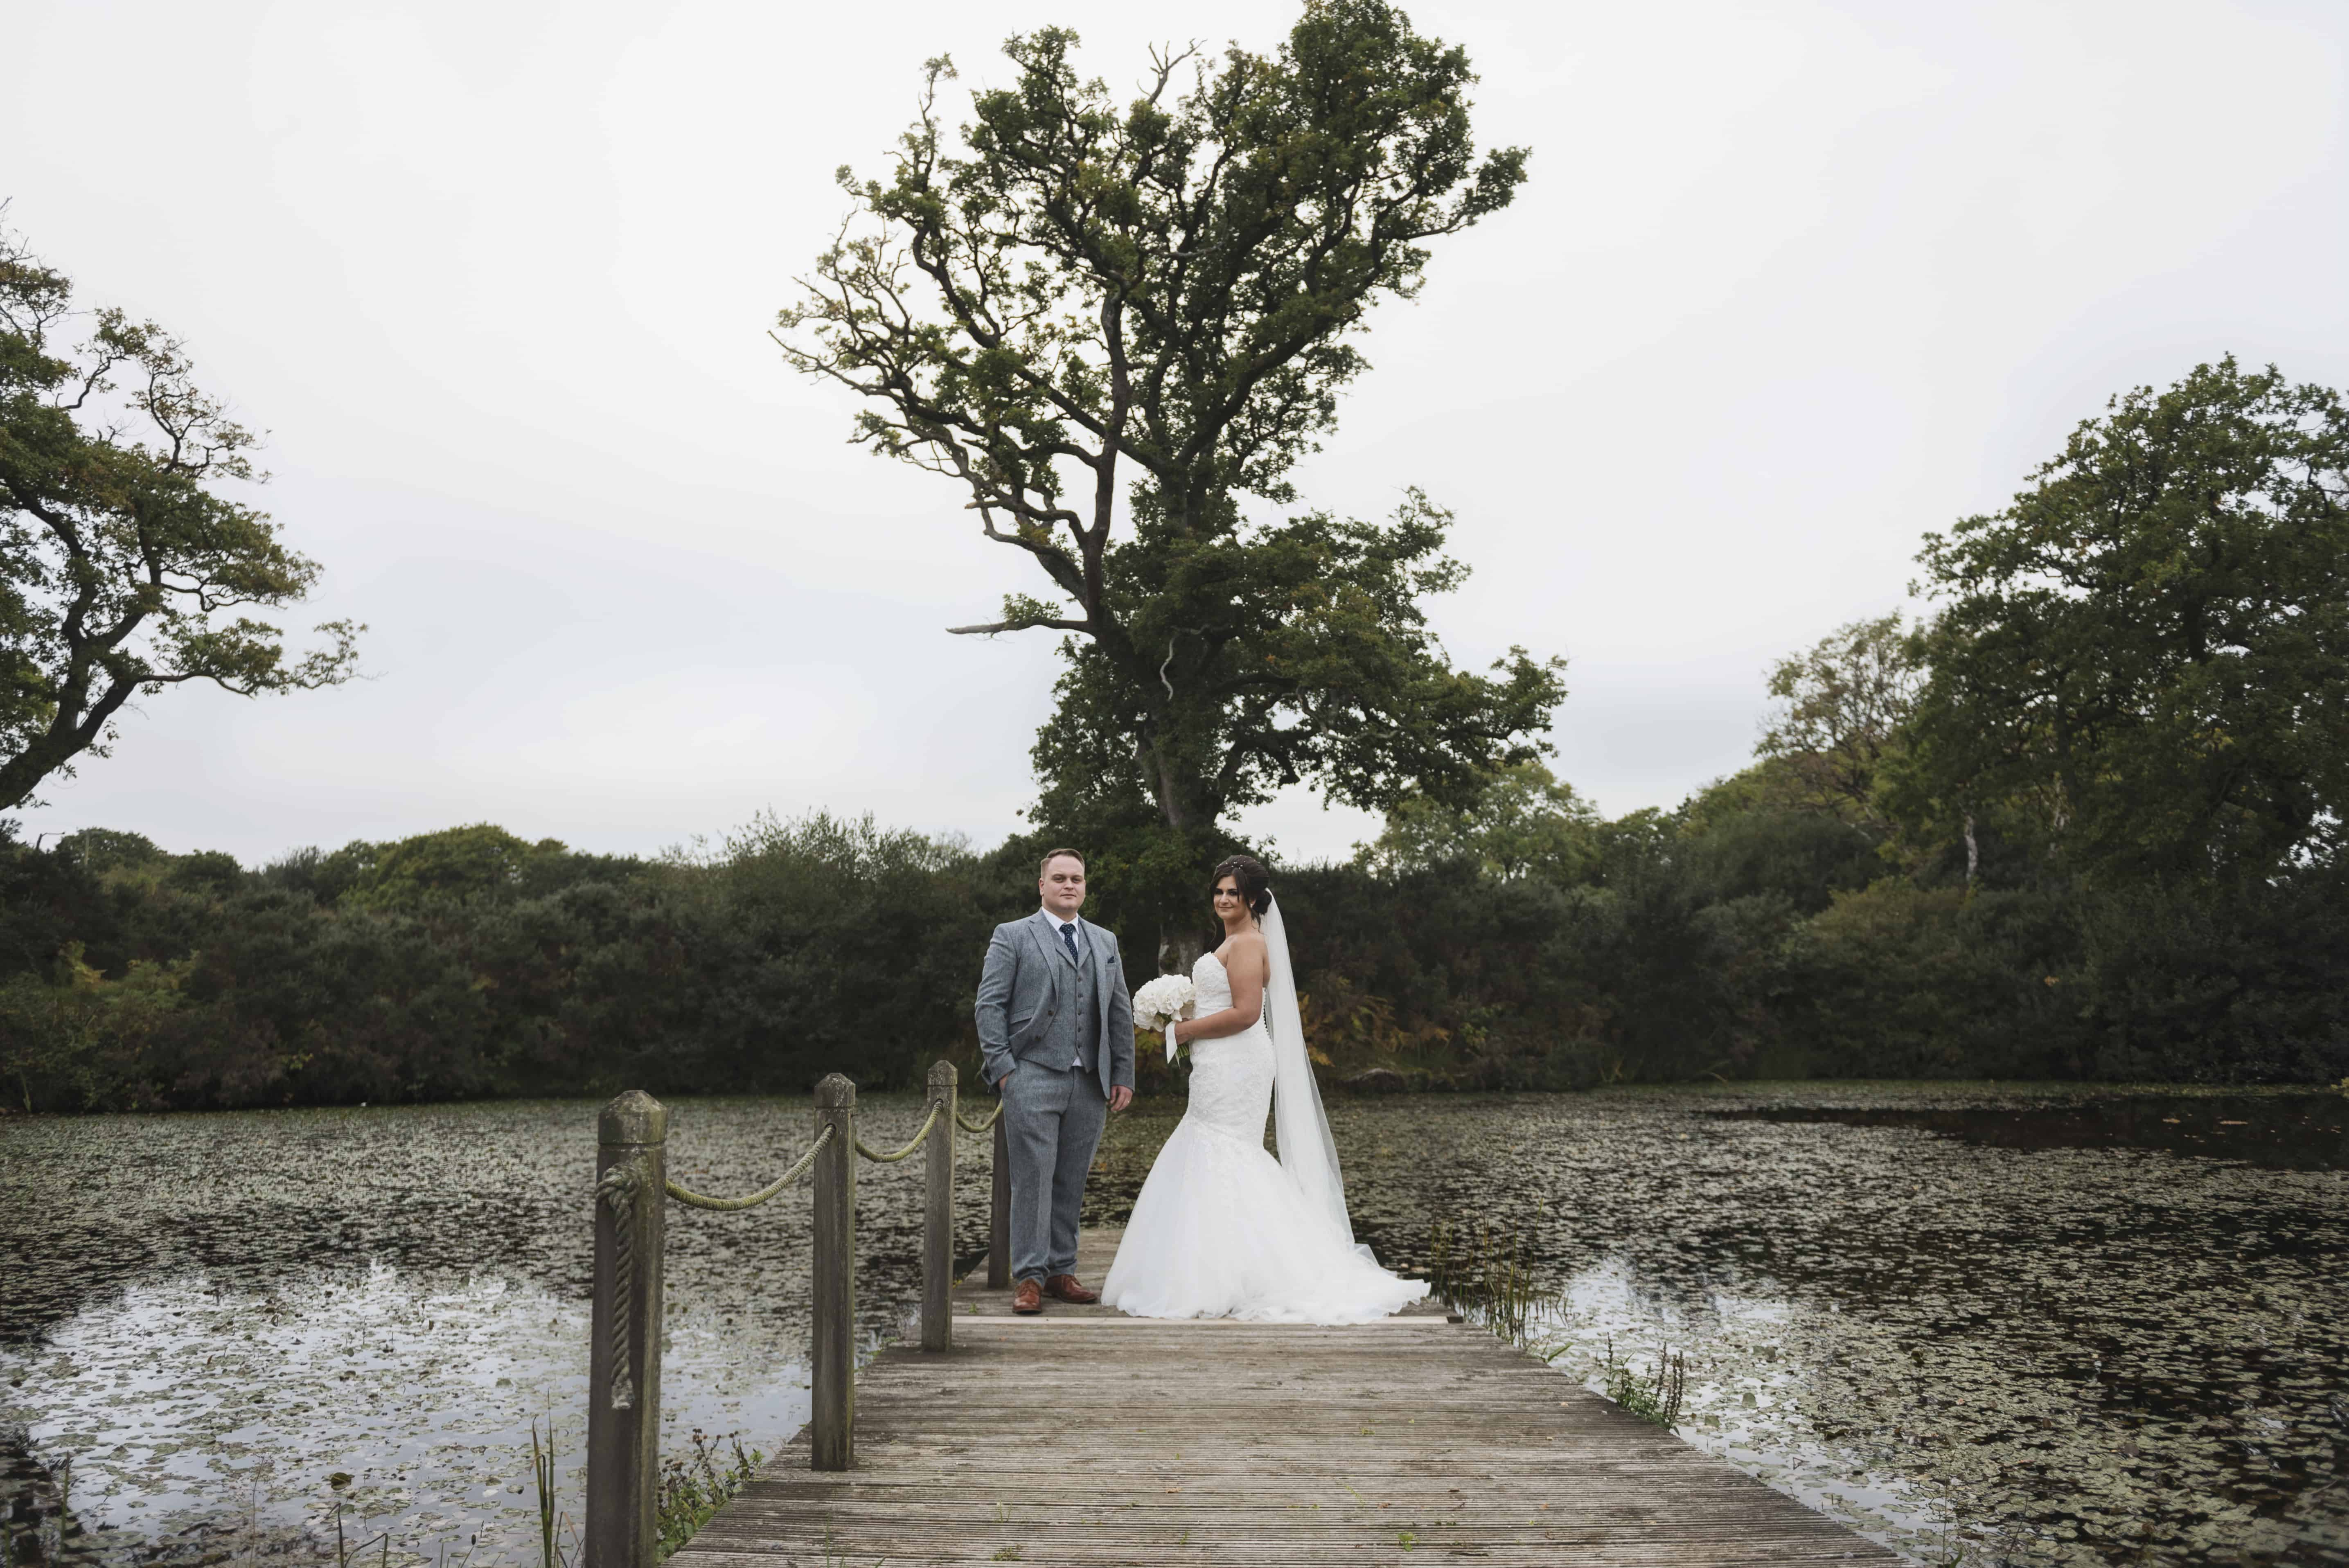 Bride & groom stood jetty in front of lake Oldwalls Wedding Photographer